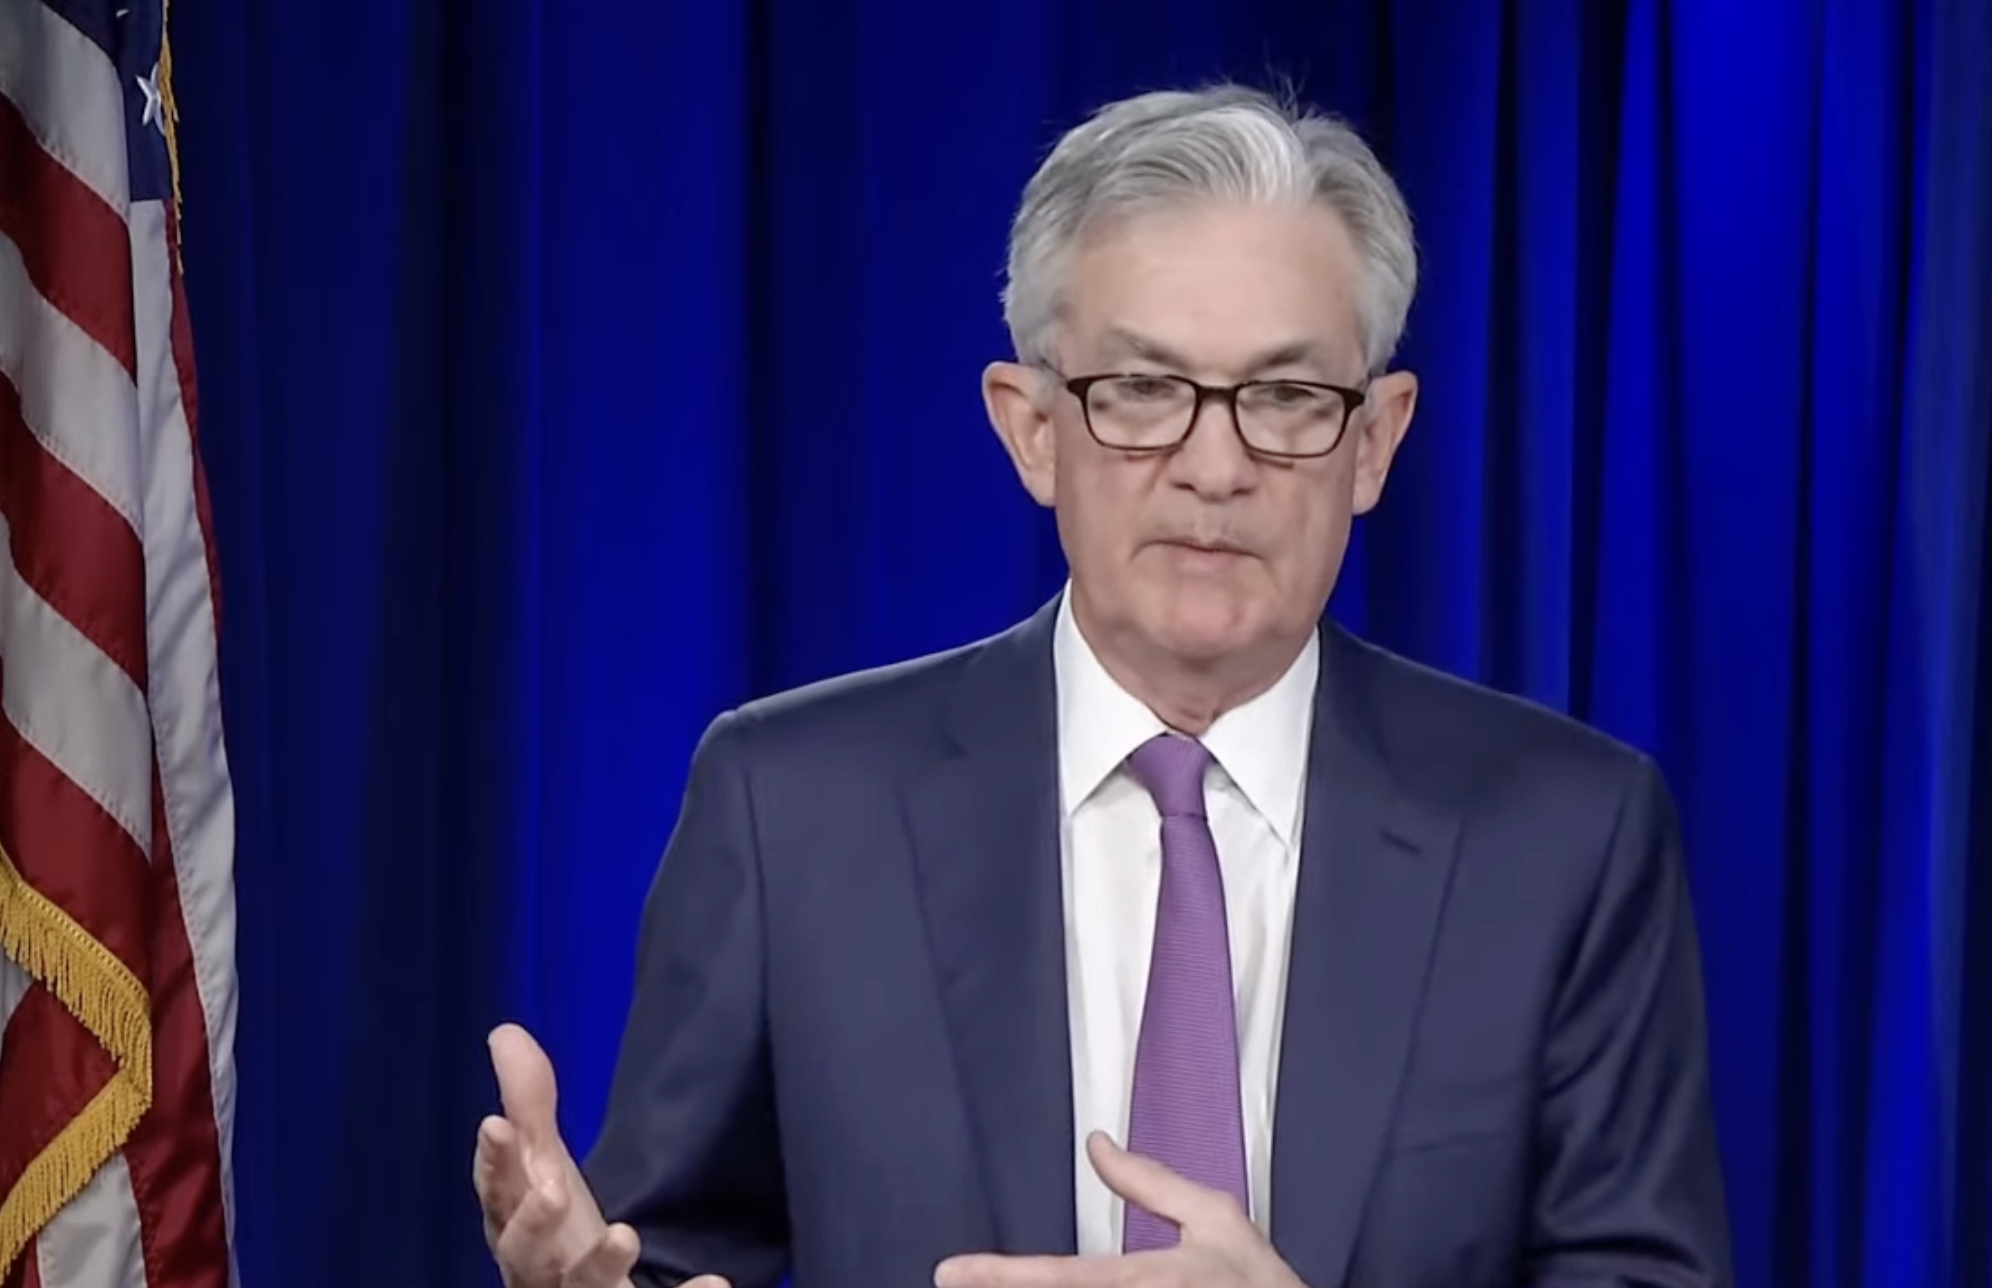 Federal Reserve Balance Sheet Tops $8T for First Time